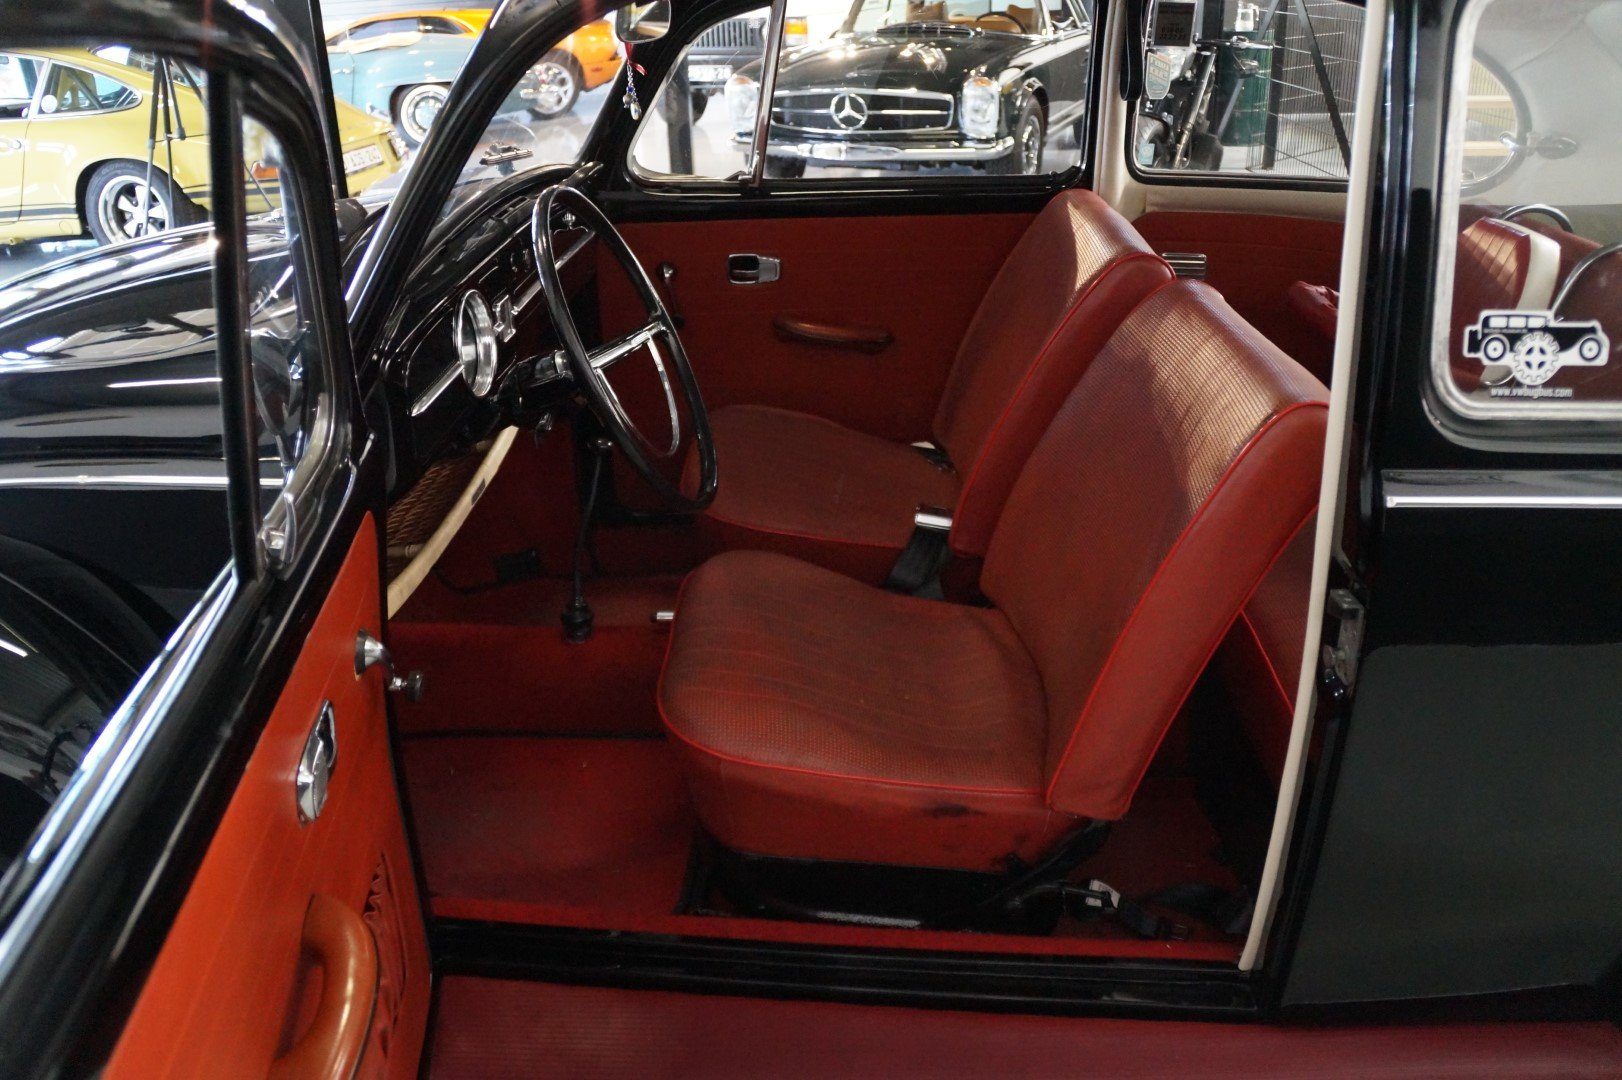 VOLKSWAGEN BEETLE matching numbers fully restored (1967) For Sale (picture 3 of 6)